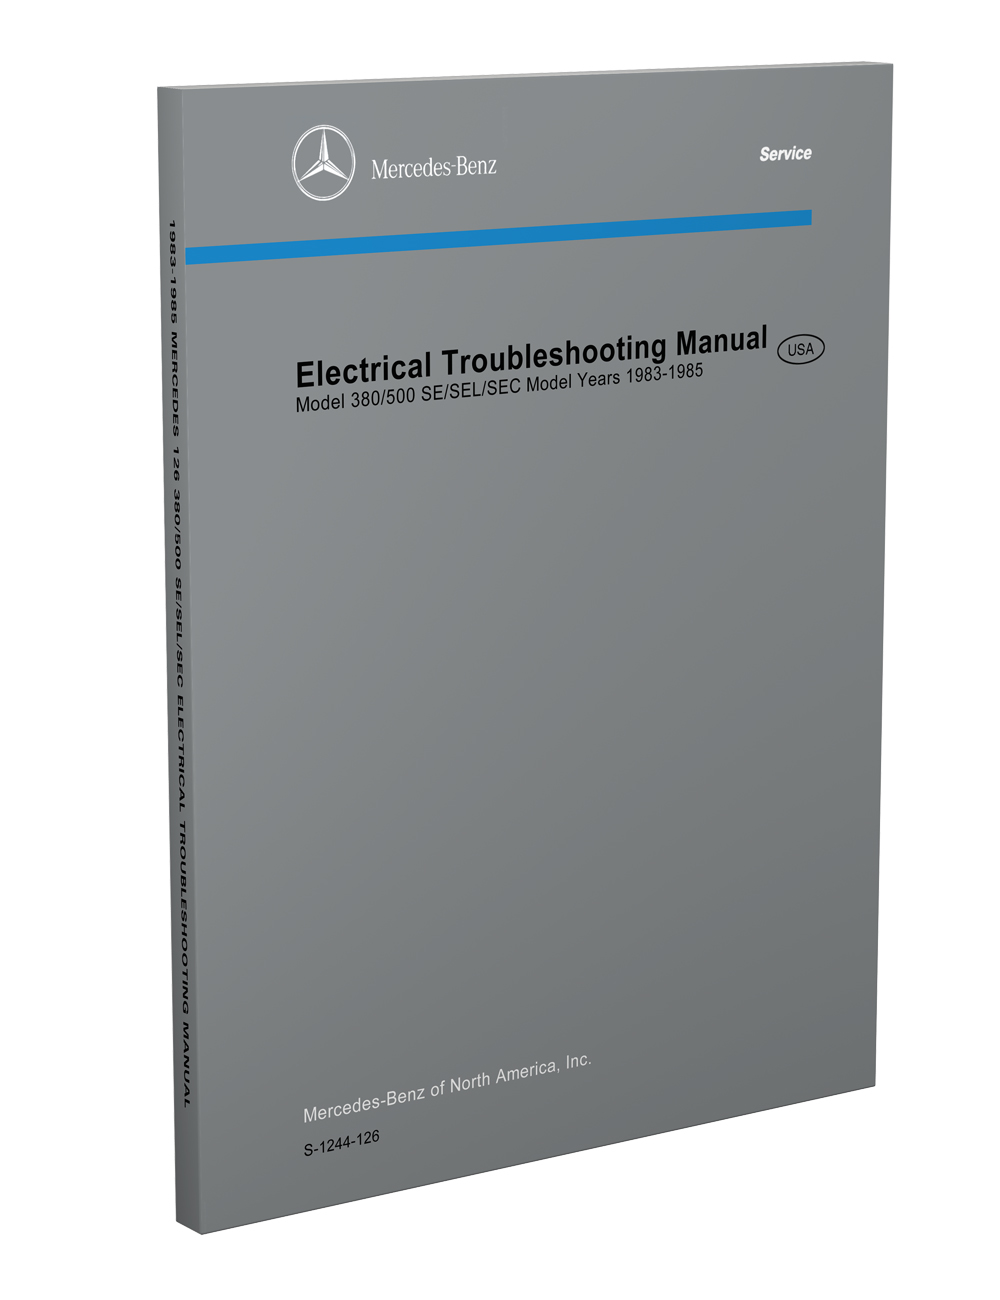 1986 1991 mercedes 126 electrical troubleshooting manual mercedes s class 1960 81 500se wiring diagram mercedes benz